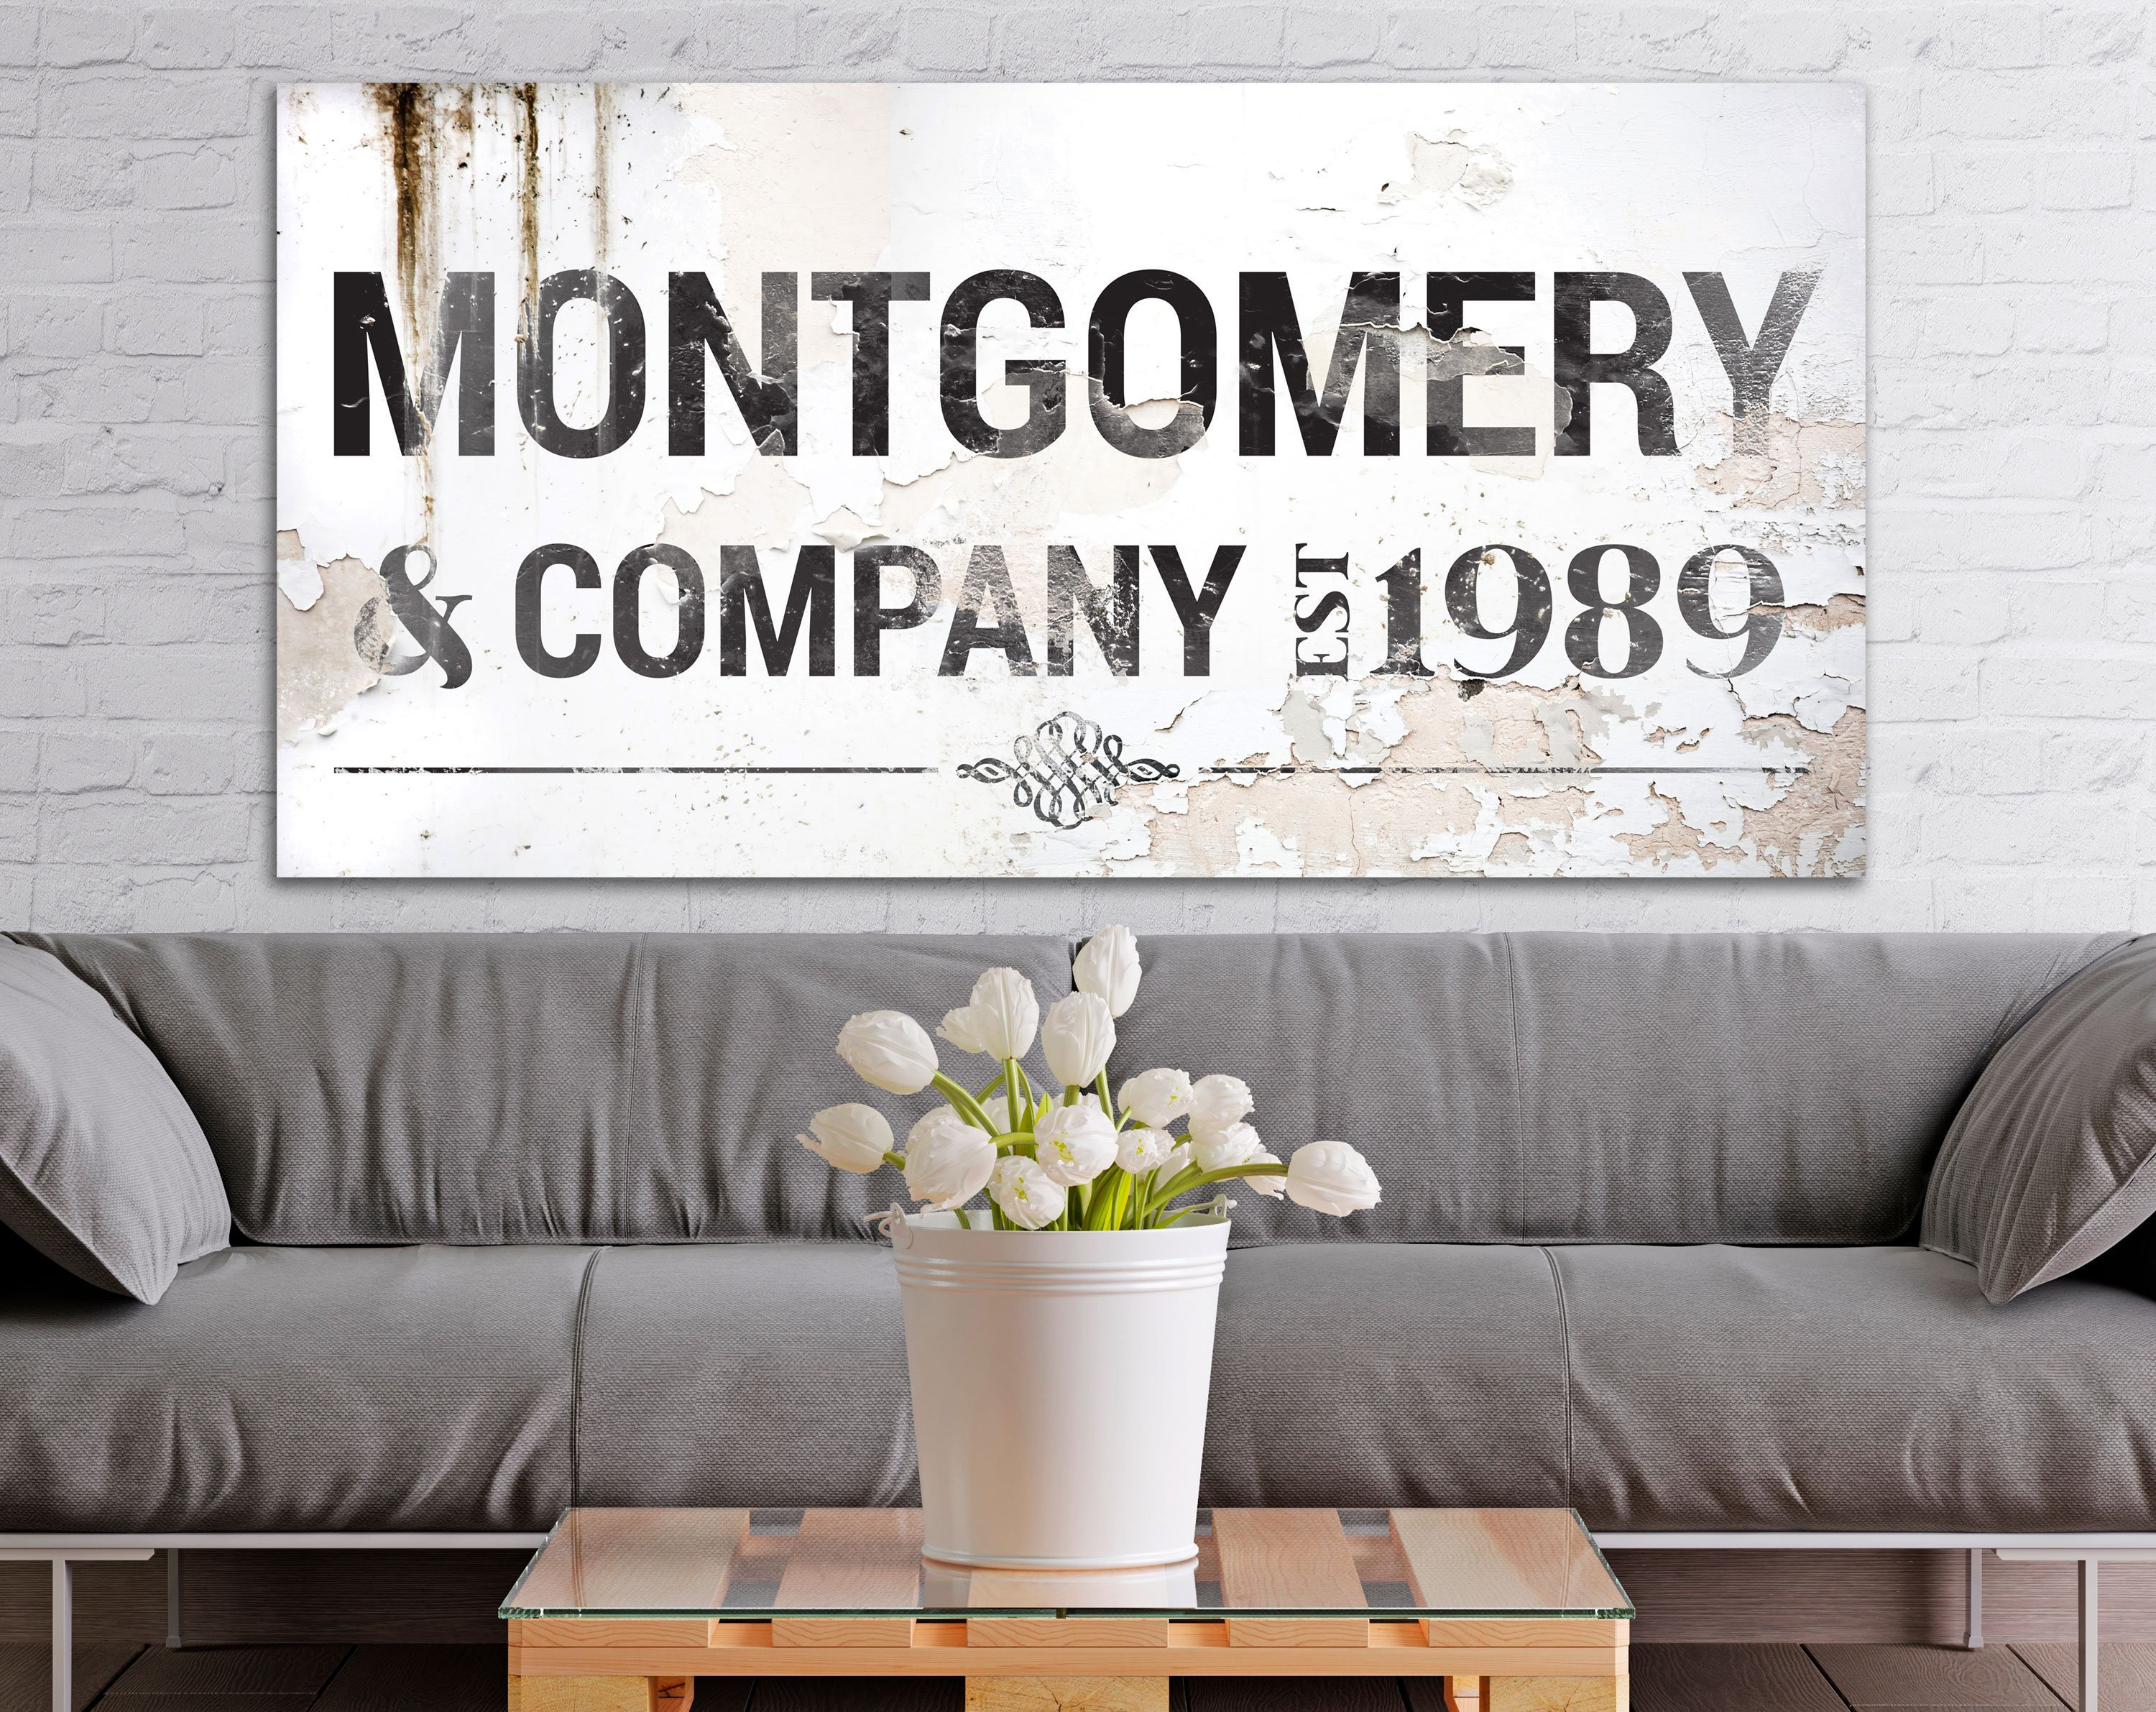 Farmhouse Family Wall Art, Industrial Modern Decor, Large Established Last  Name Sign, Rustic Home Decor Print with regard to Large Modern Industrial Wall Decor (Image 7 of 30)